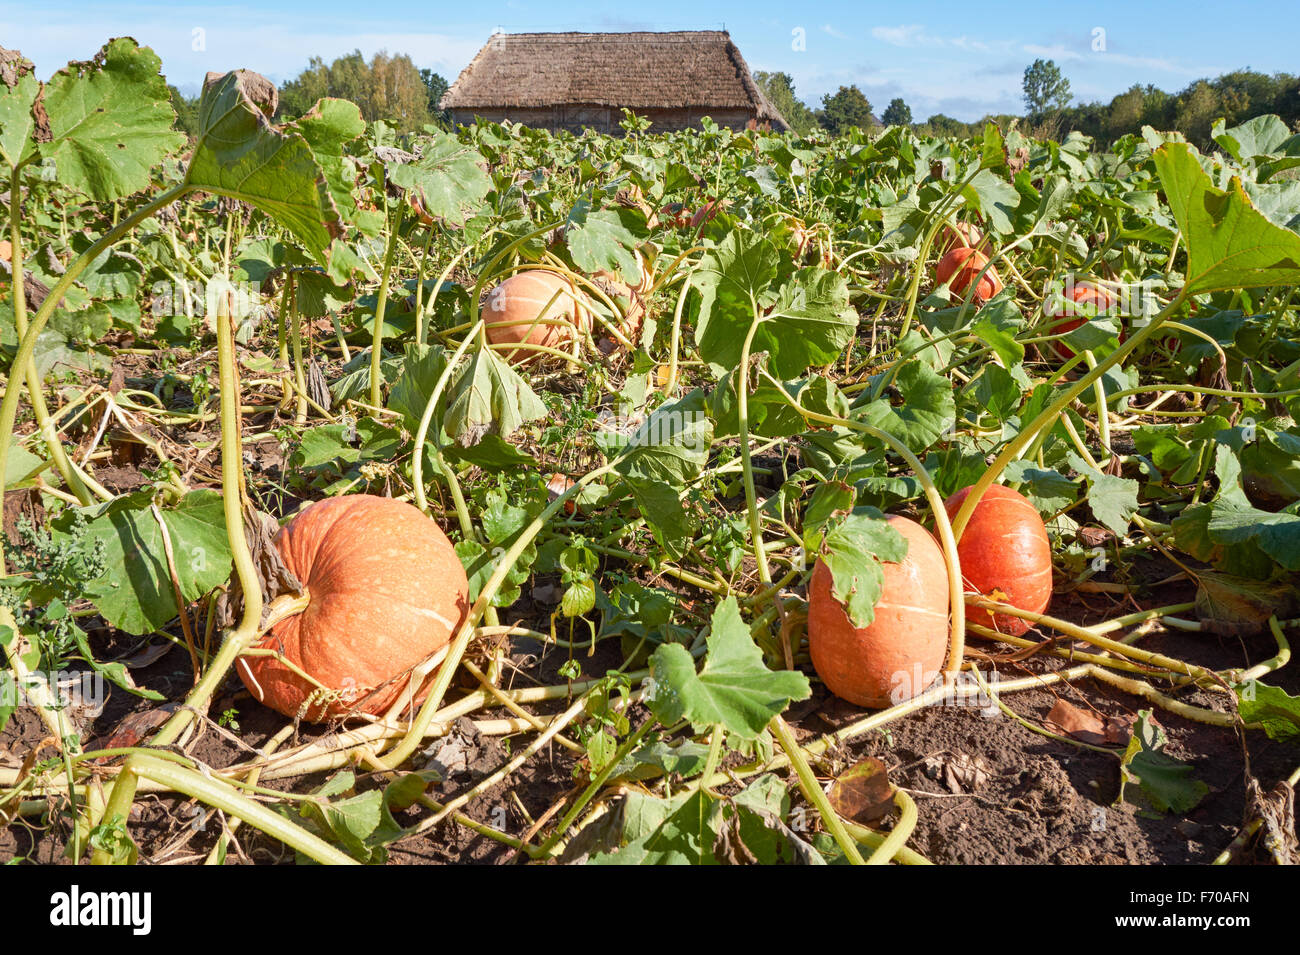 Organic pumpkins growing on the field - Stock Image